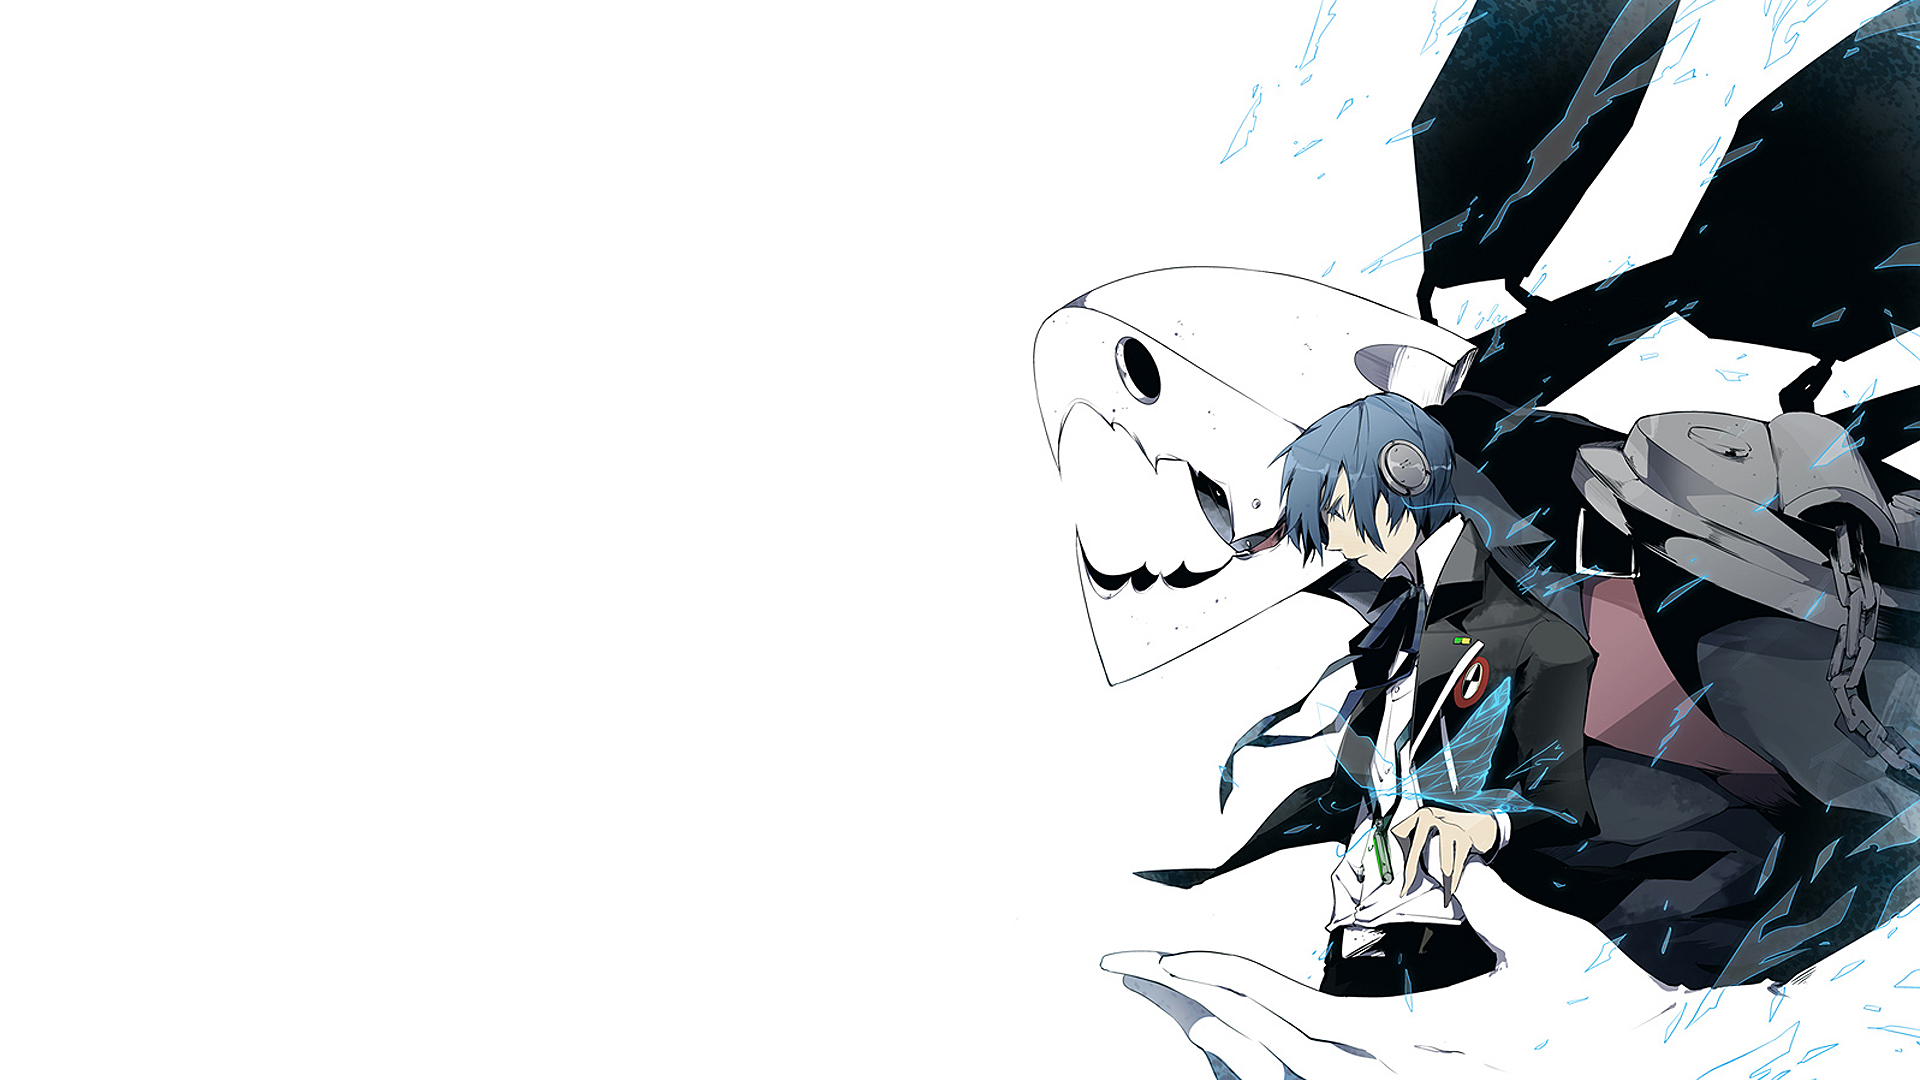 Amazing HD Wallpapers Collection of Persona - 1920x1080 px, 17/02/2014